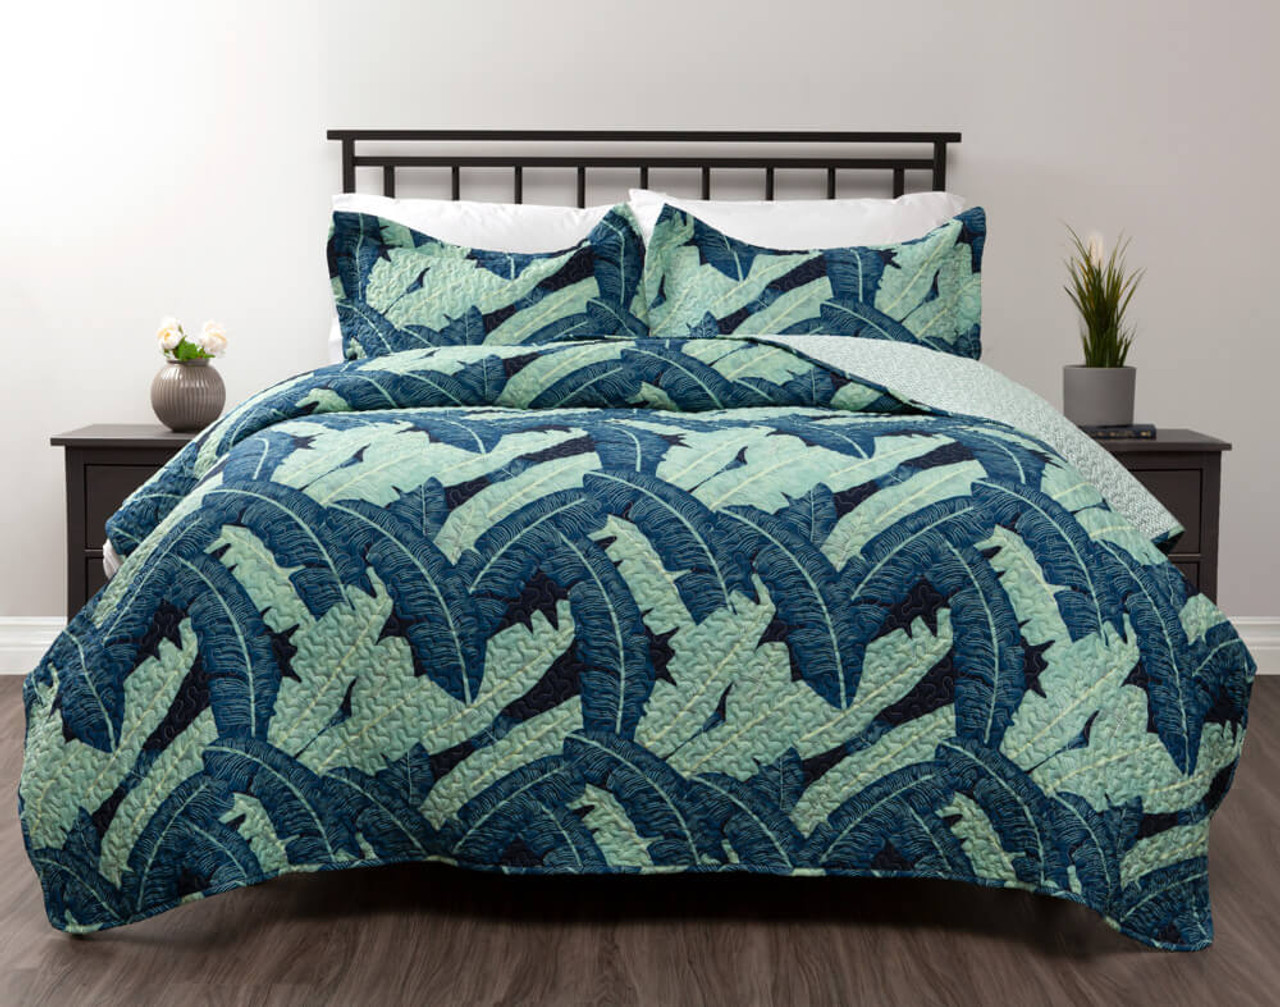 Malibar Coverlet Set featuring banana leaves in shades of sapphire blue and pale celadon green on a dark navy blue background.